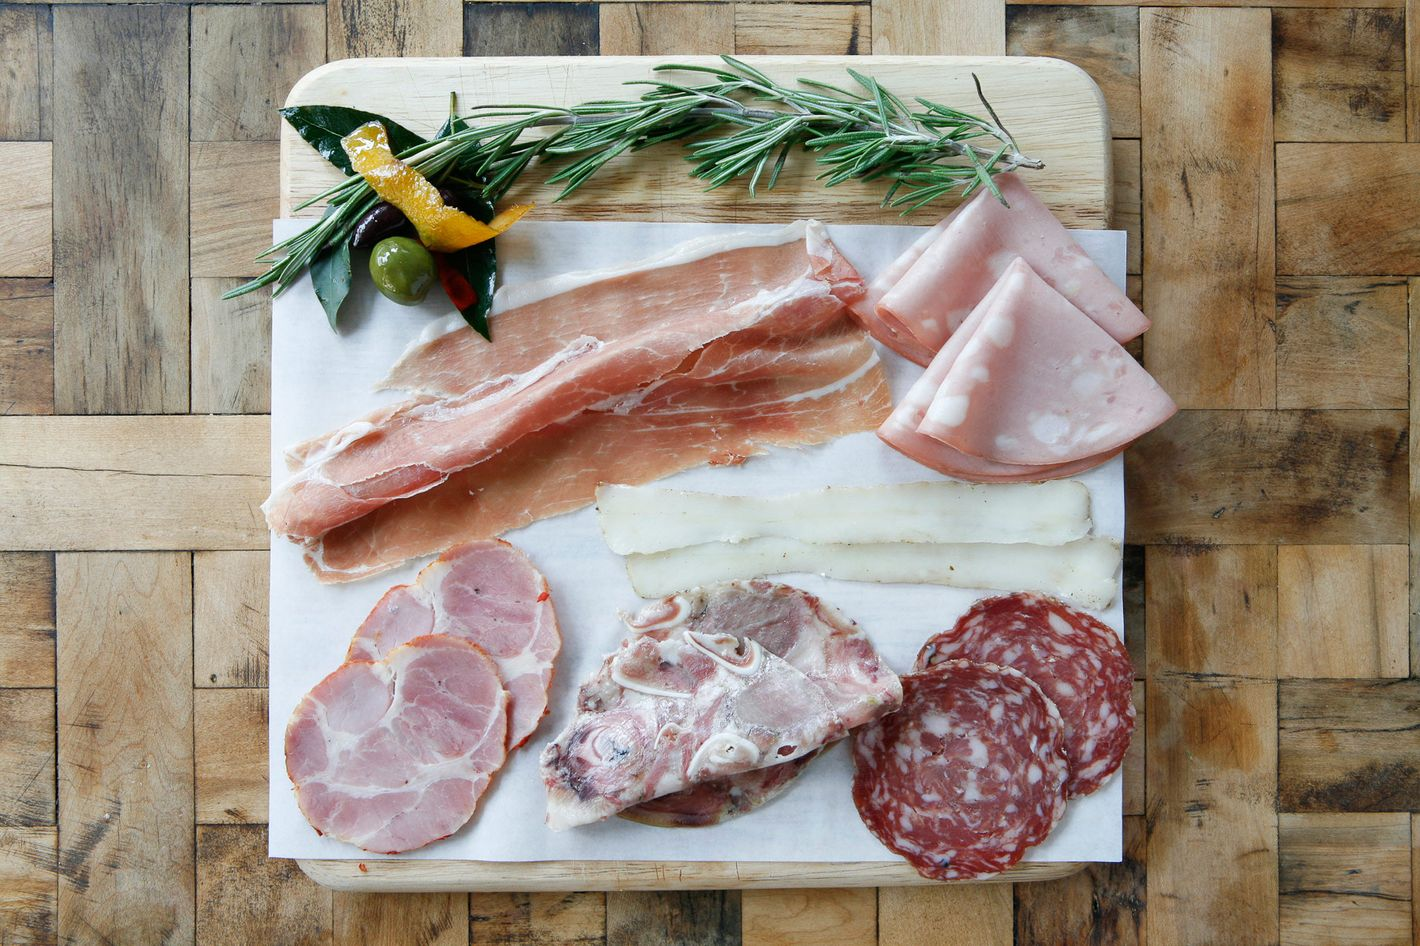 Last through the winter with cured meat from Rosemary's.